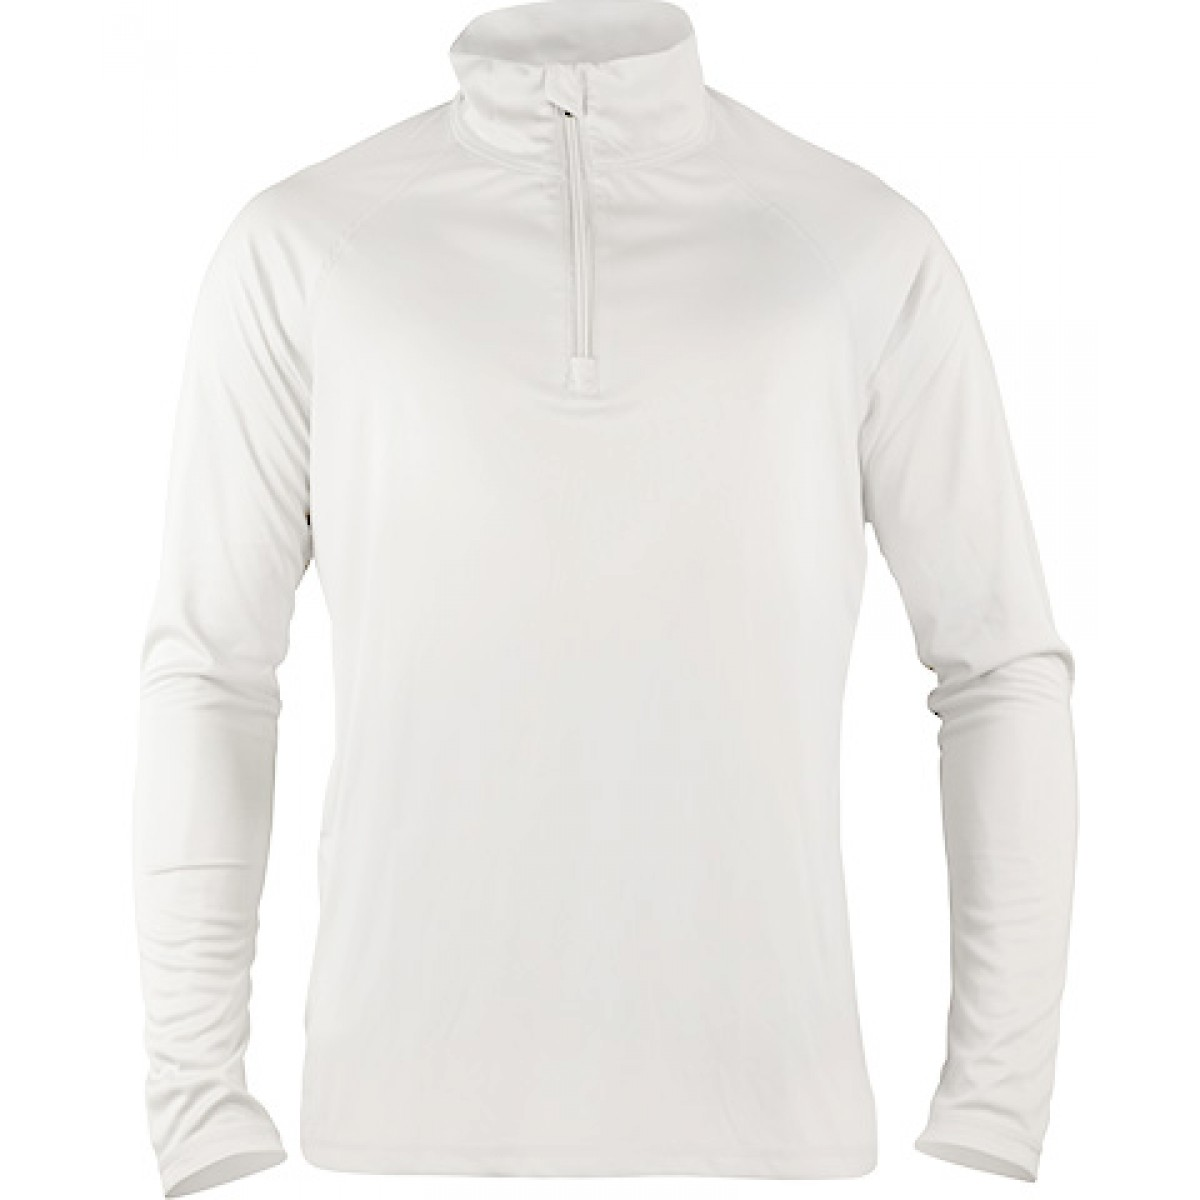 Quarter-Zip Lightweight Pullover-White-XL